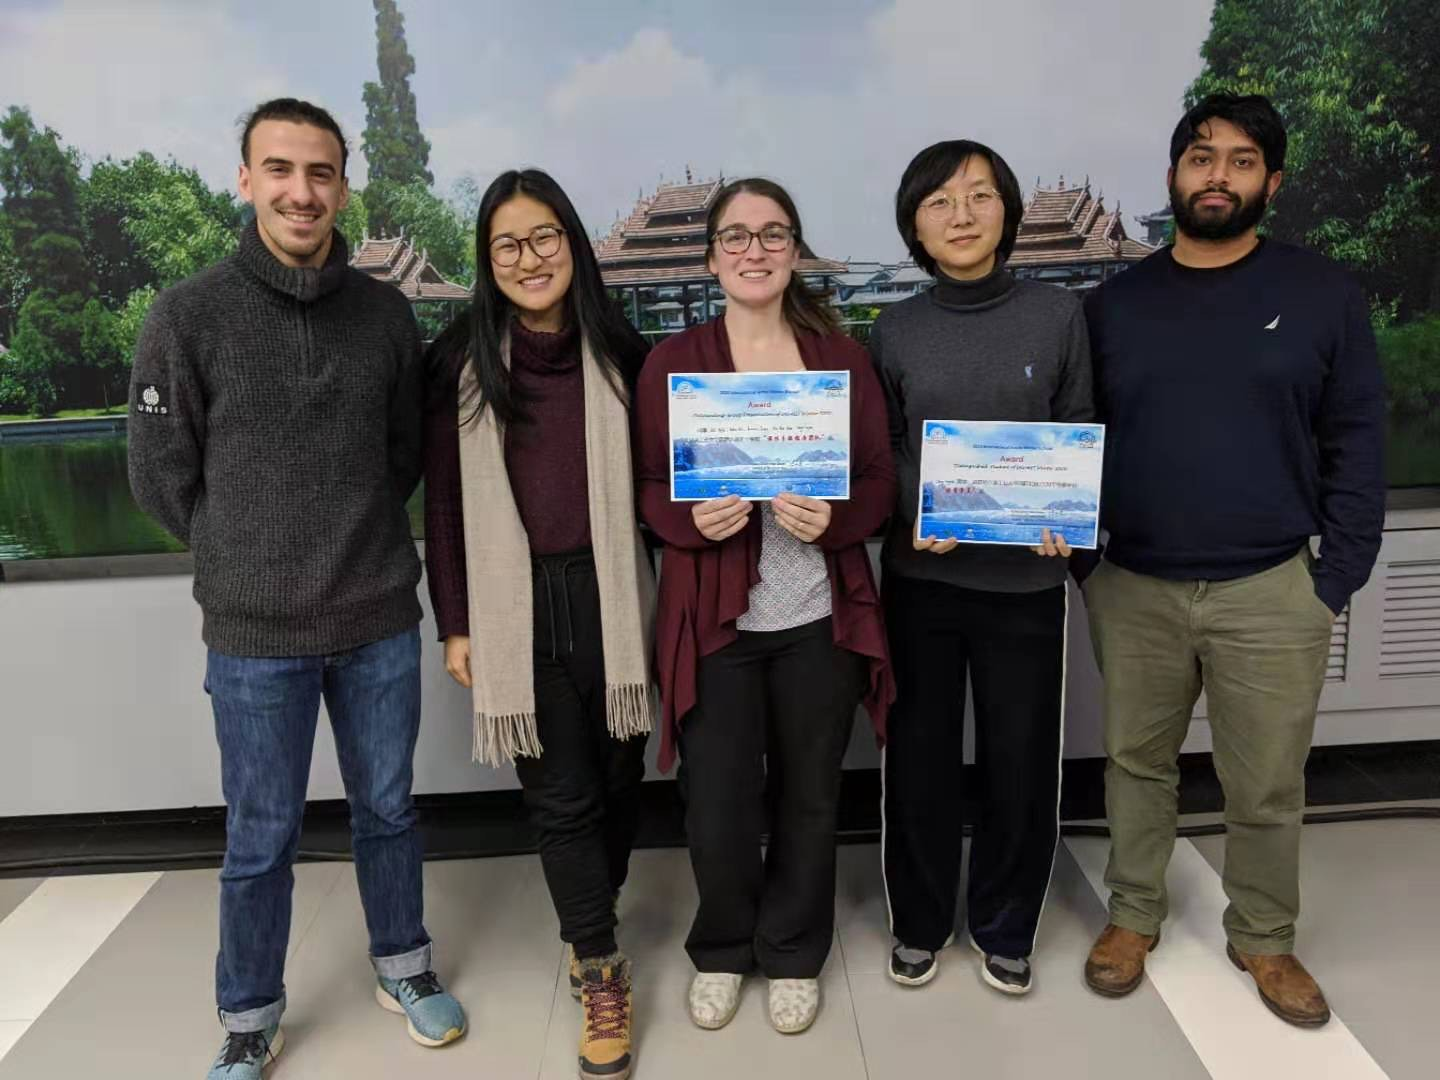 Five students stand holder award certificates